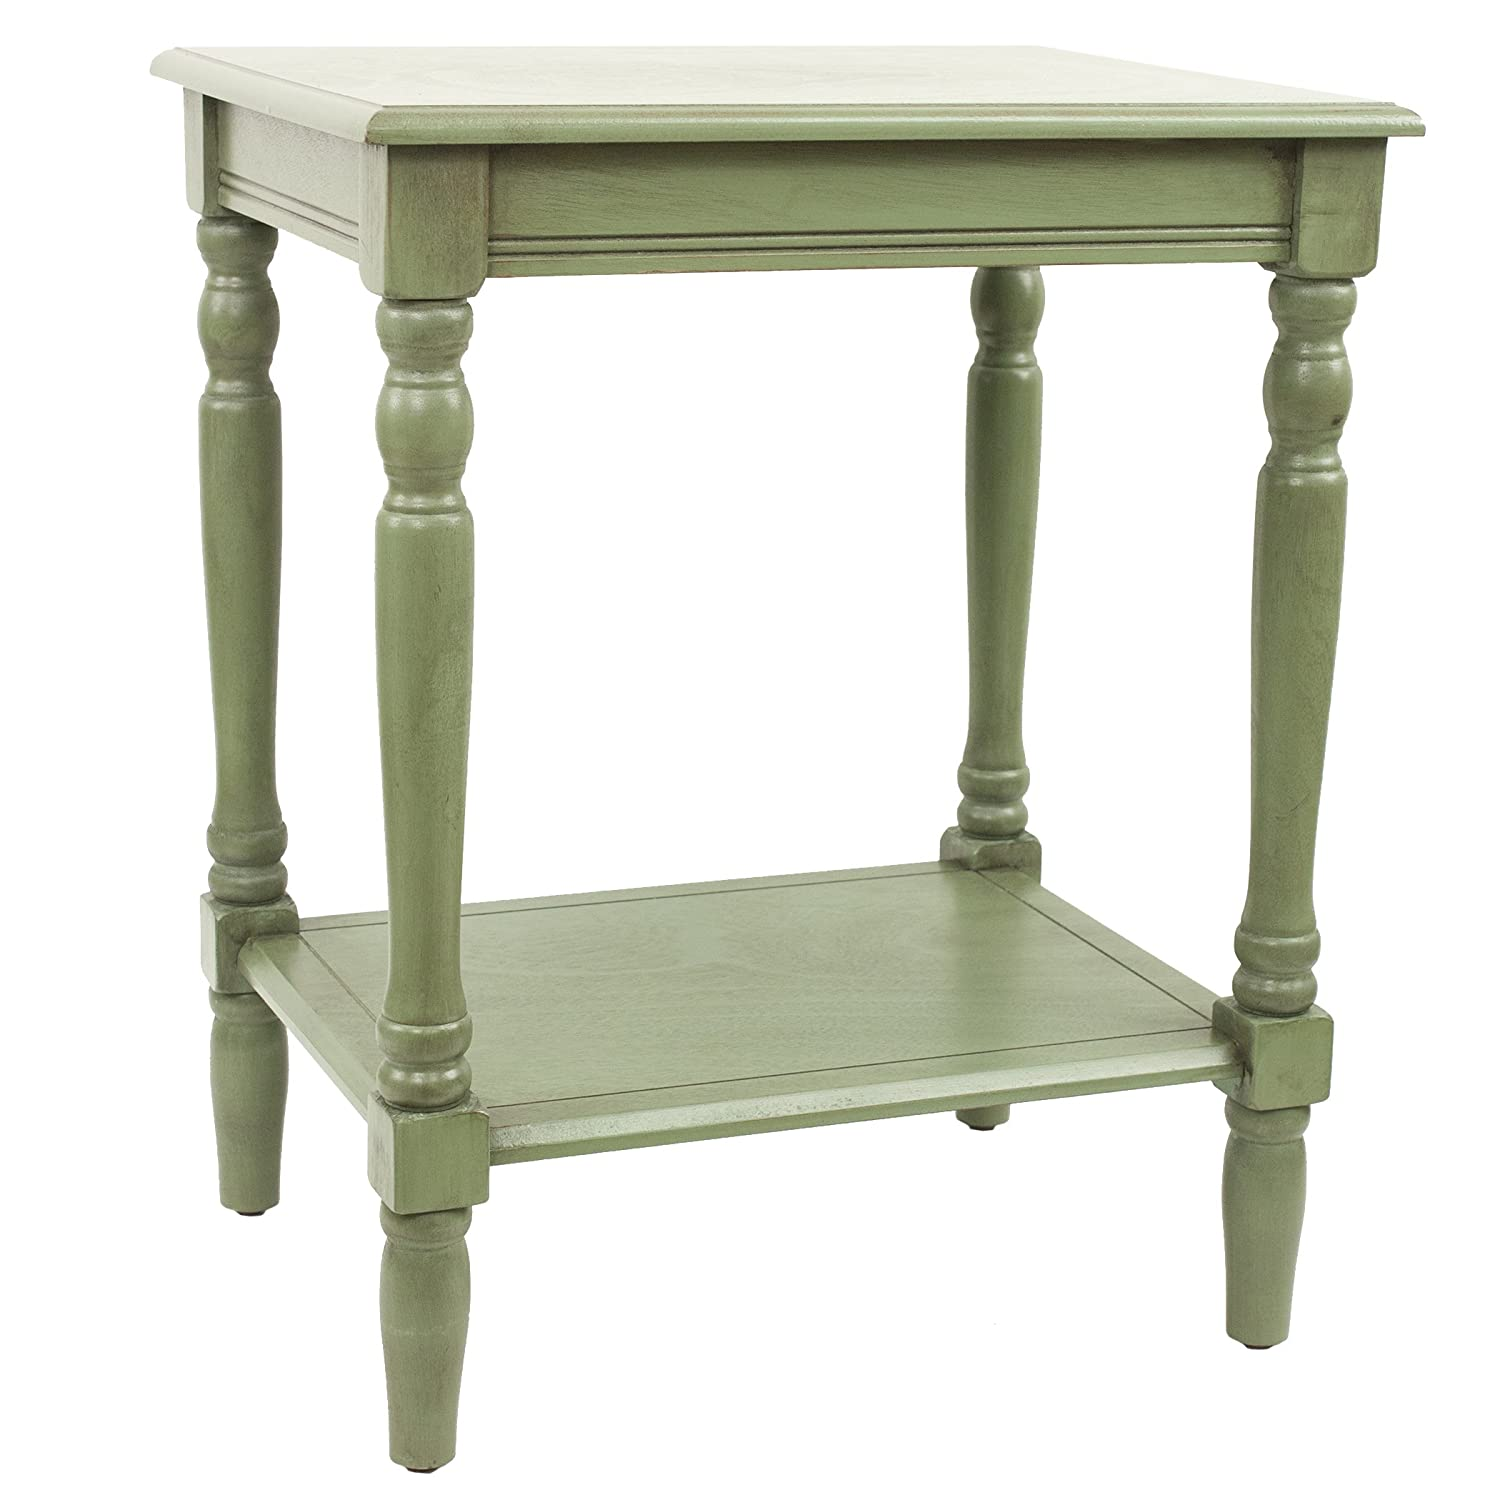 Amazon.com: Décor Therapy FR1572 Simplify End Table Green: Kitchen ...